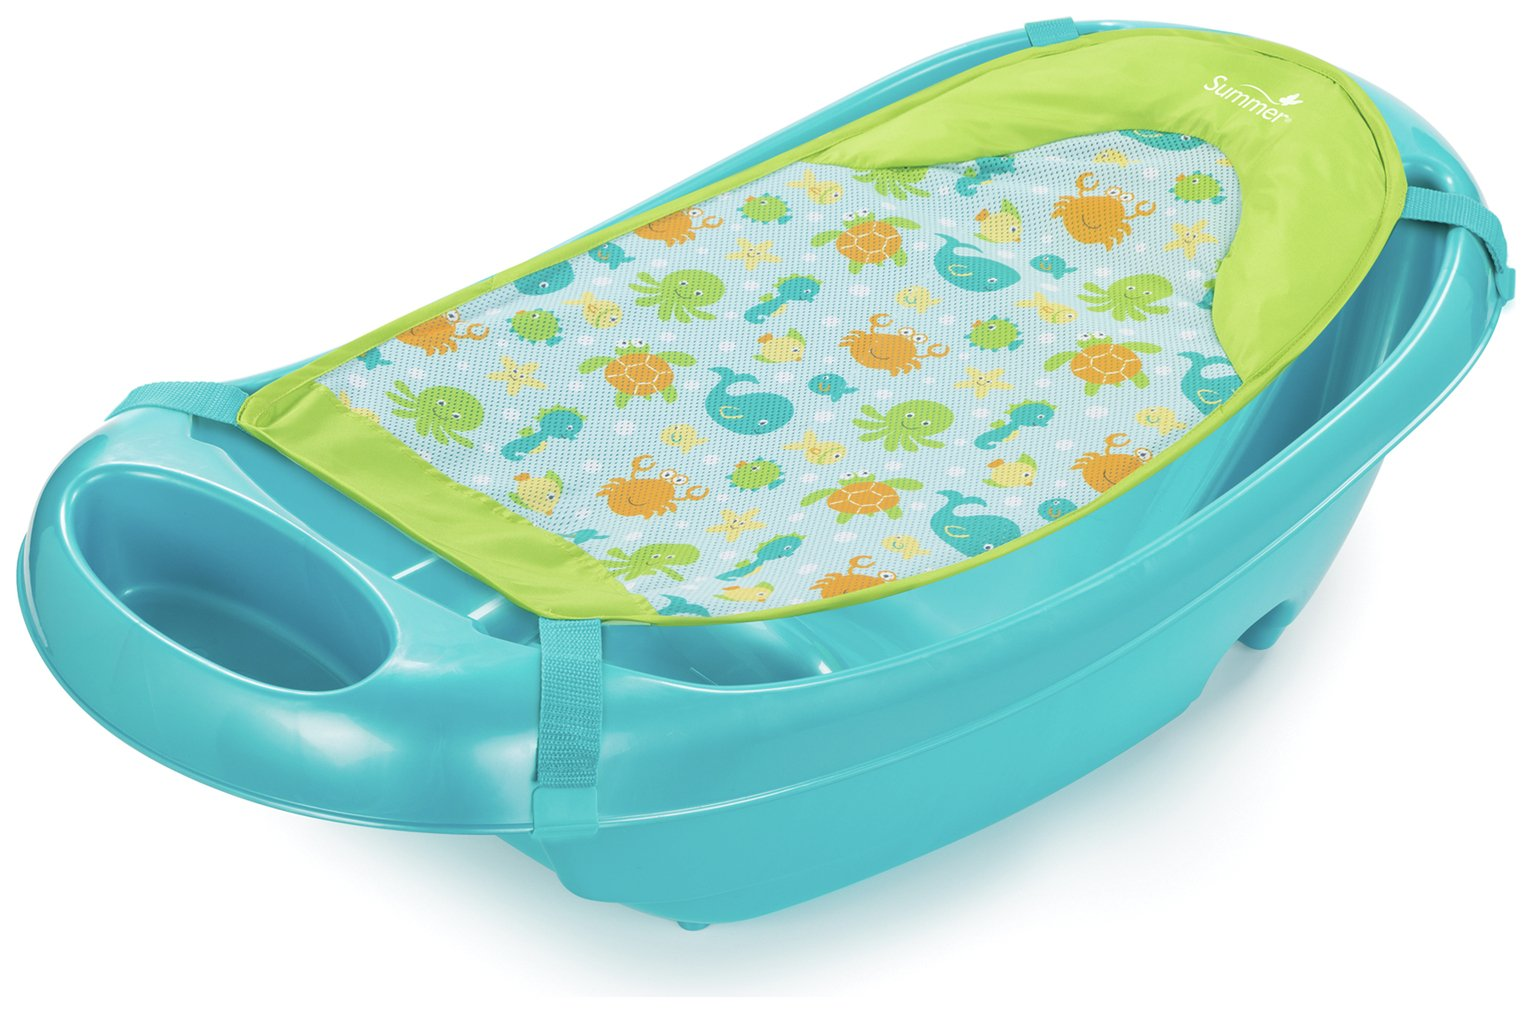 Summer Infant Splish Splash Bath - Neutral